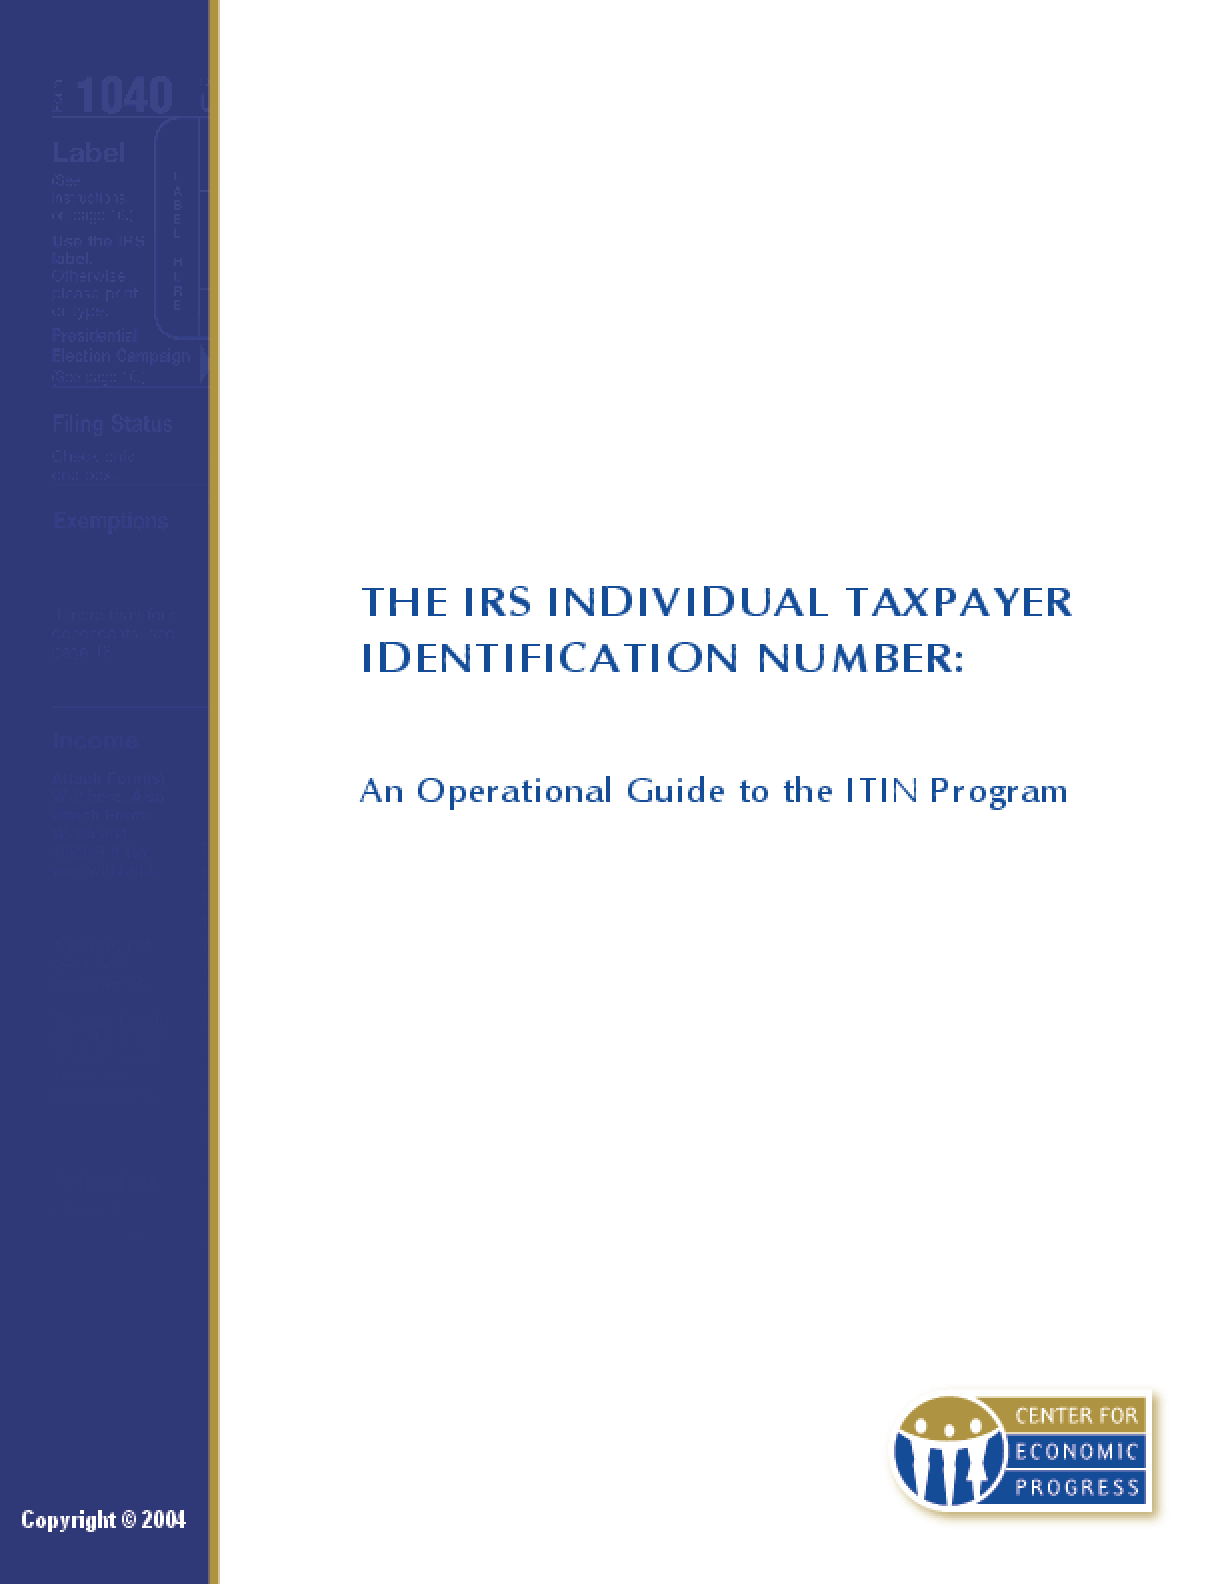 The IRS Individual Taxpayer Identification Number: An Operational Guide to the ITIN Program